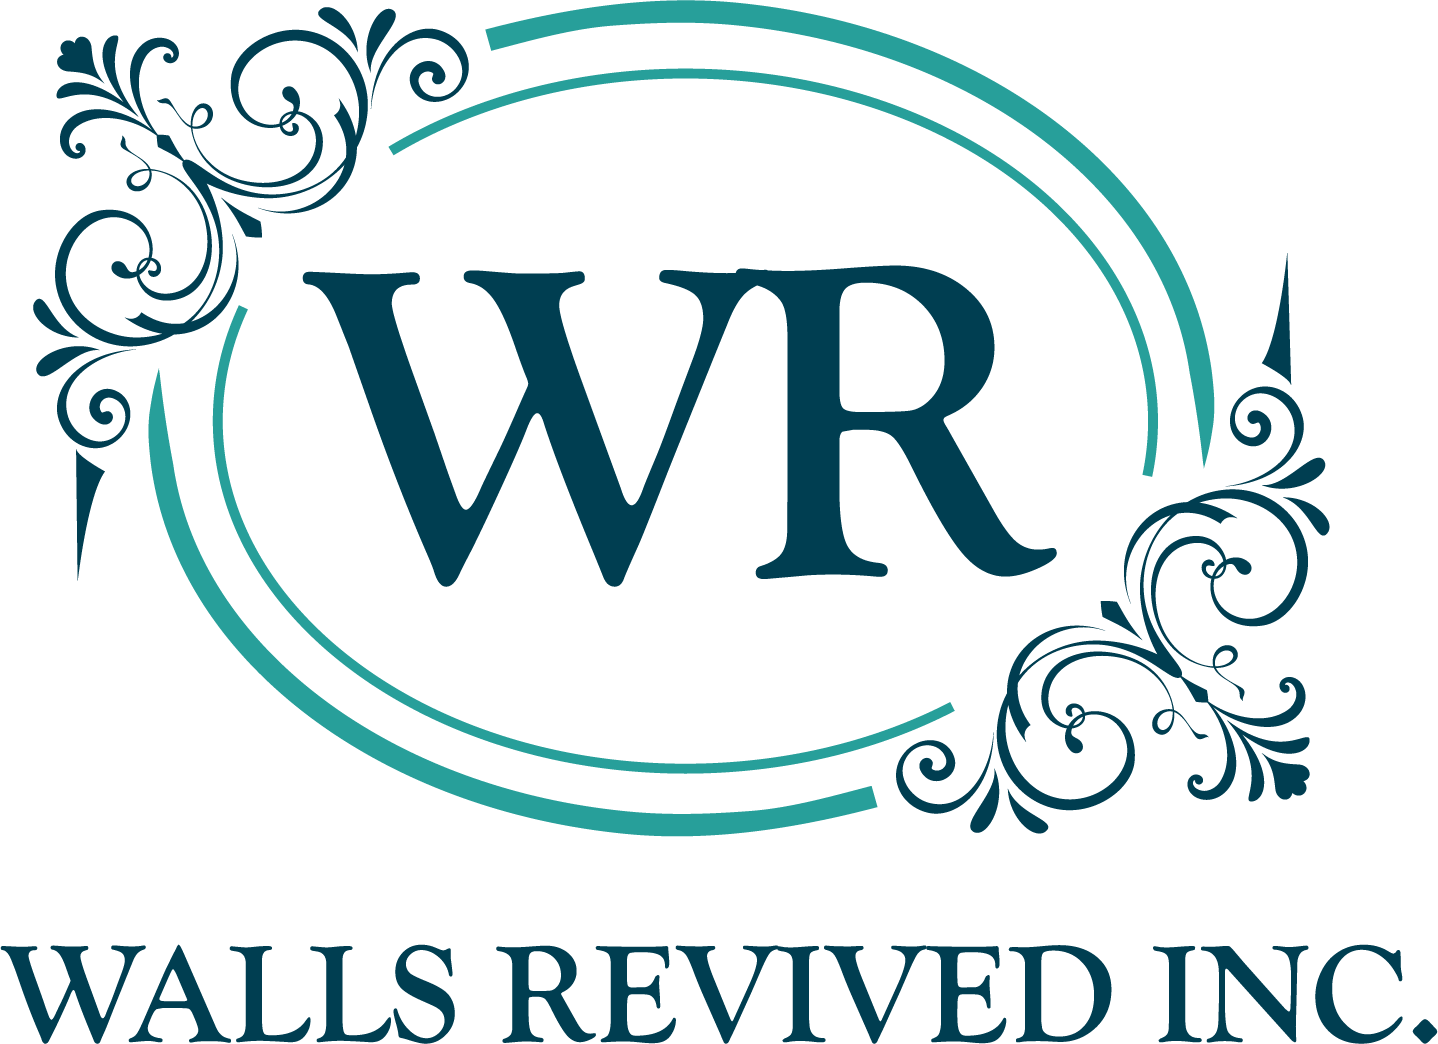 Walls Revived logo